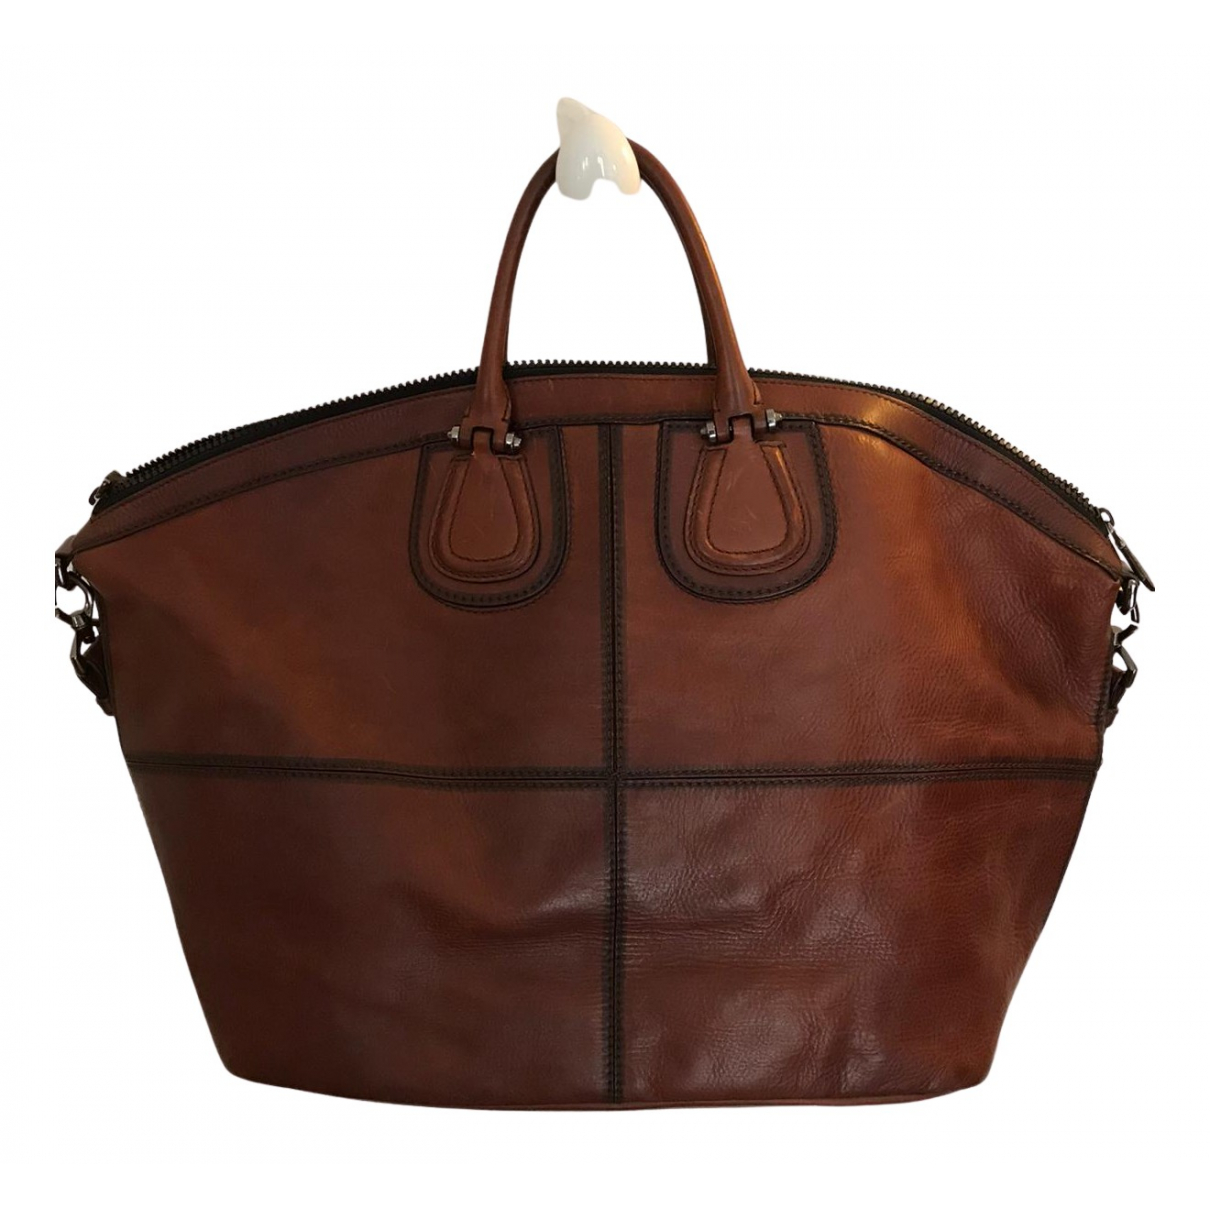 Givenchy Nightingale Brown Leather Travel bag for Women N